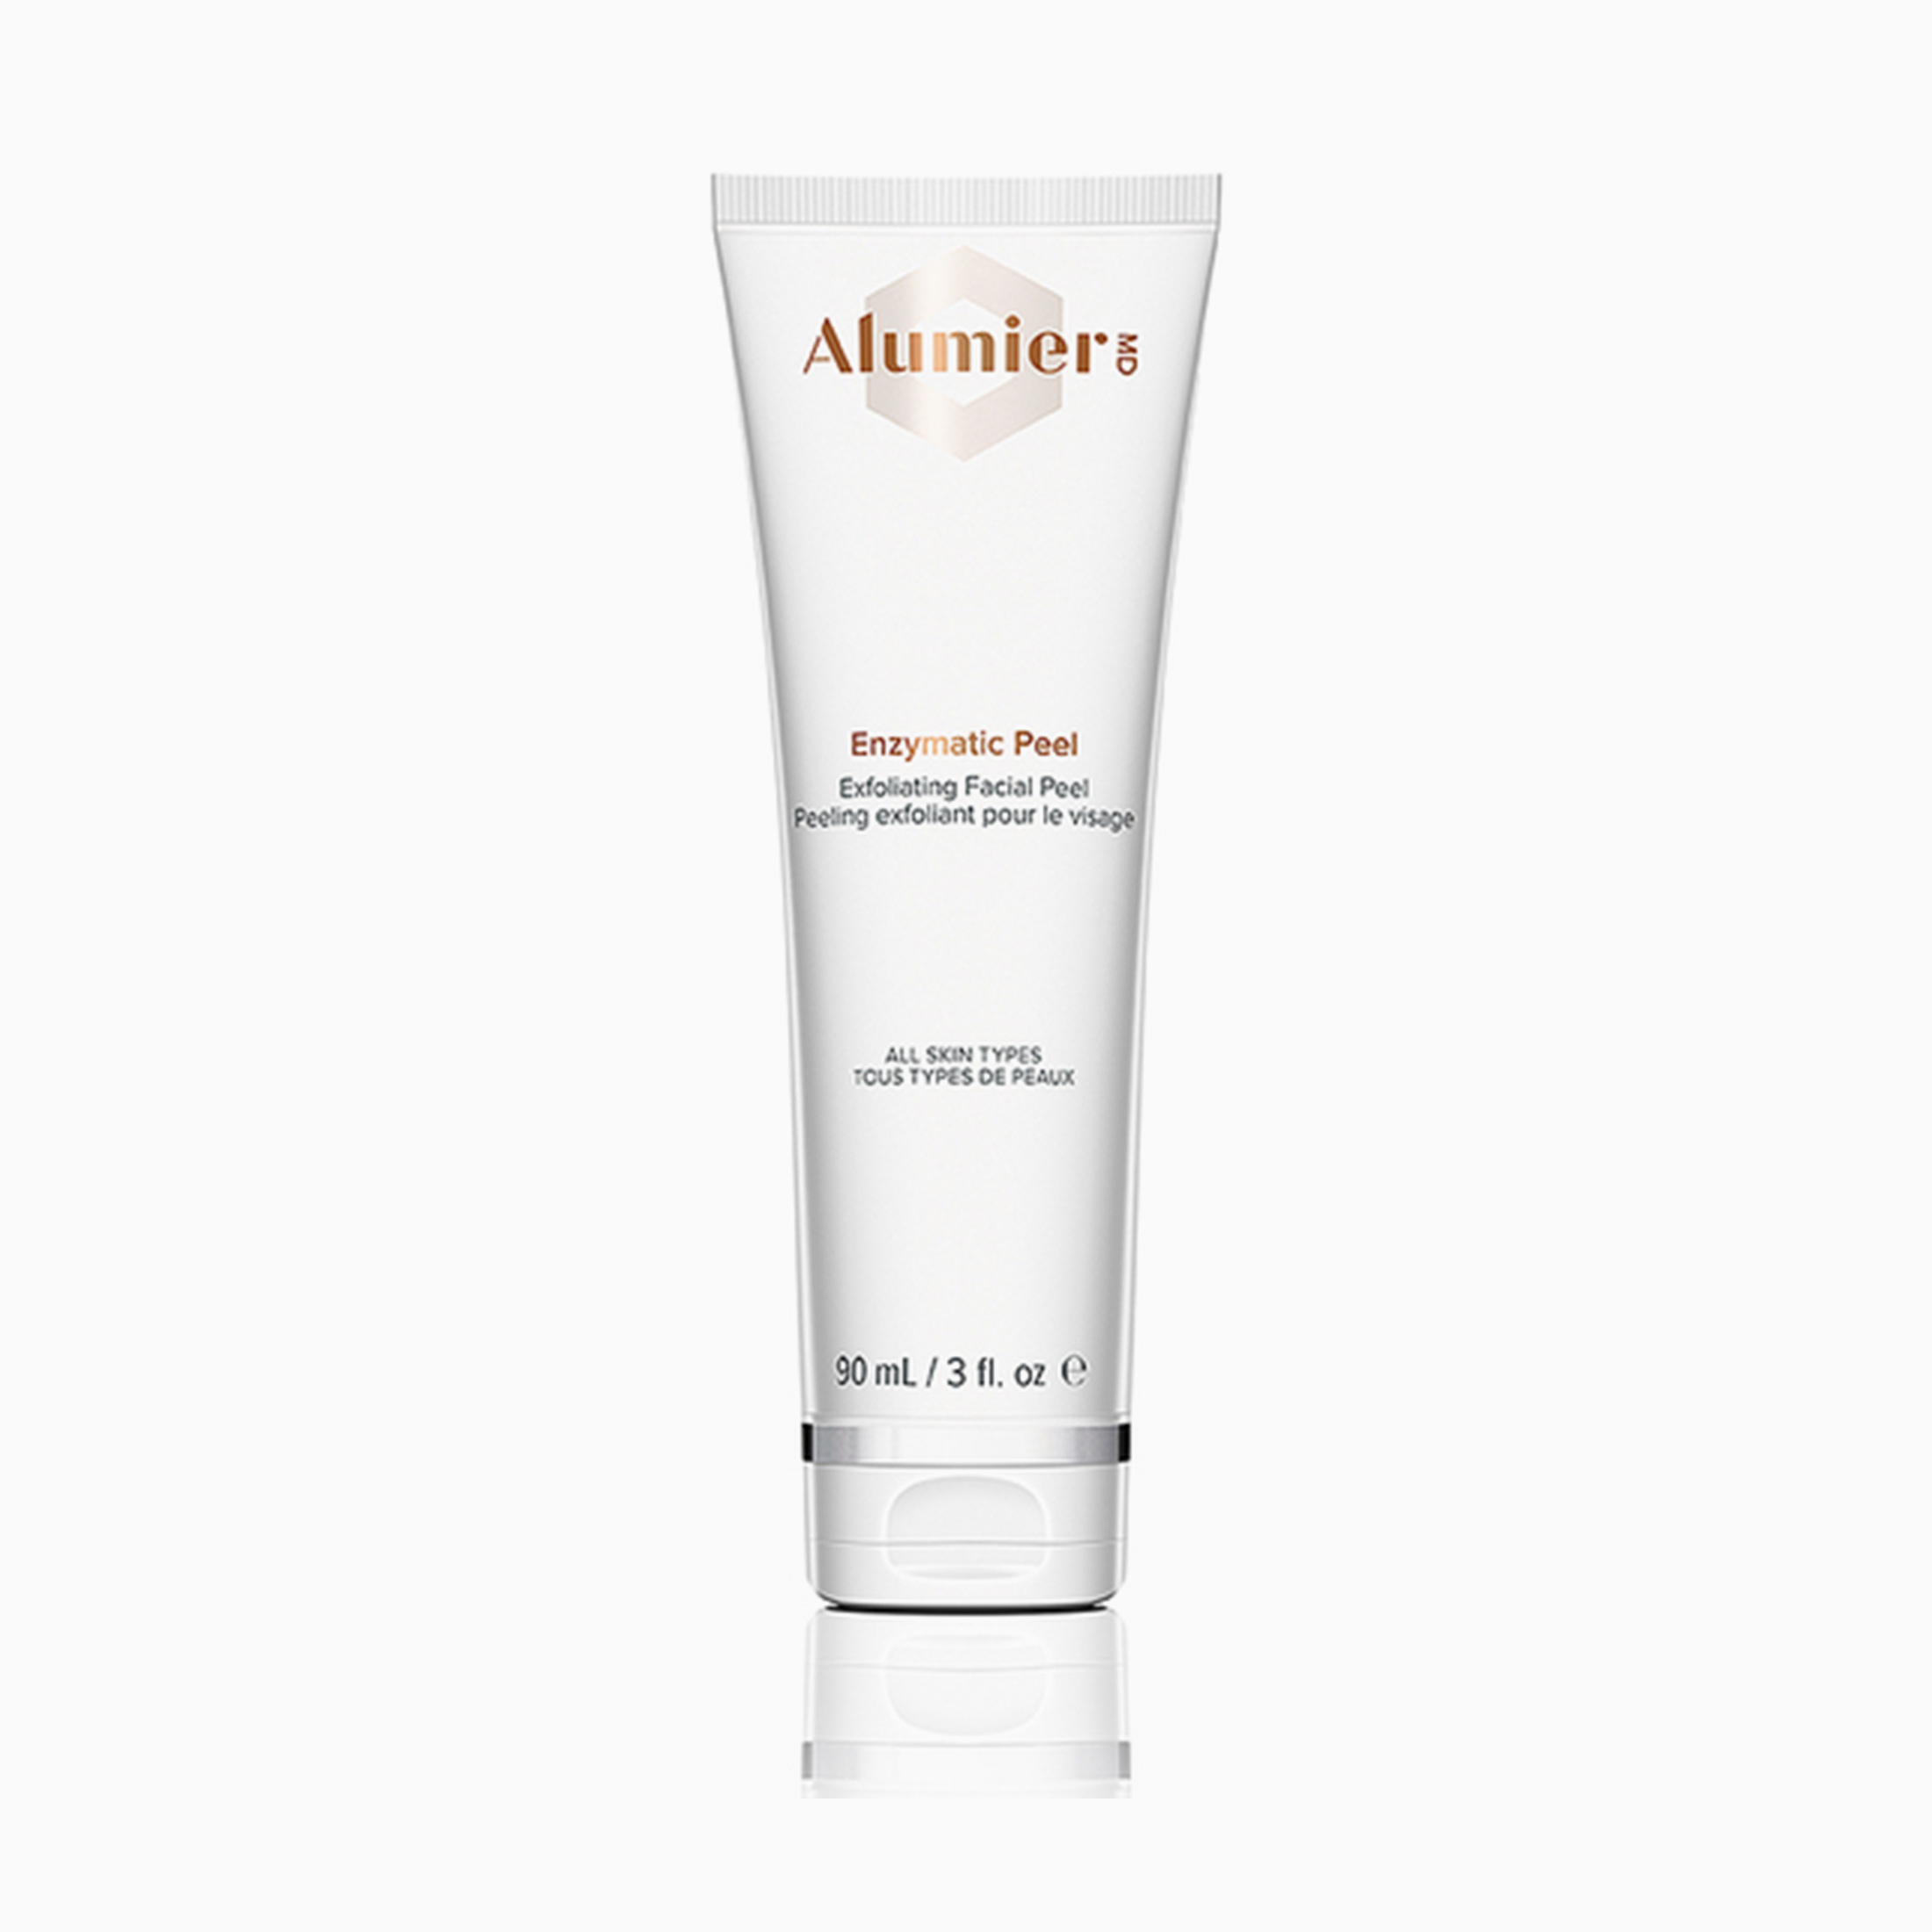 alumier is one of the best face masks